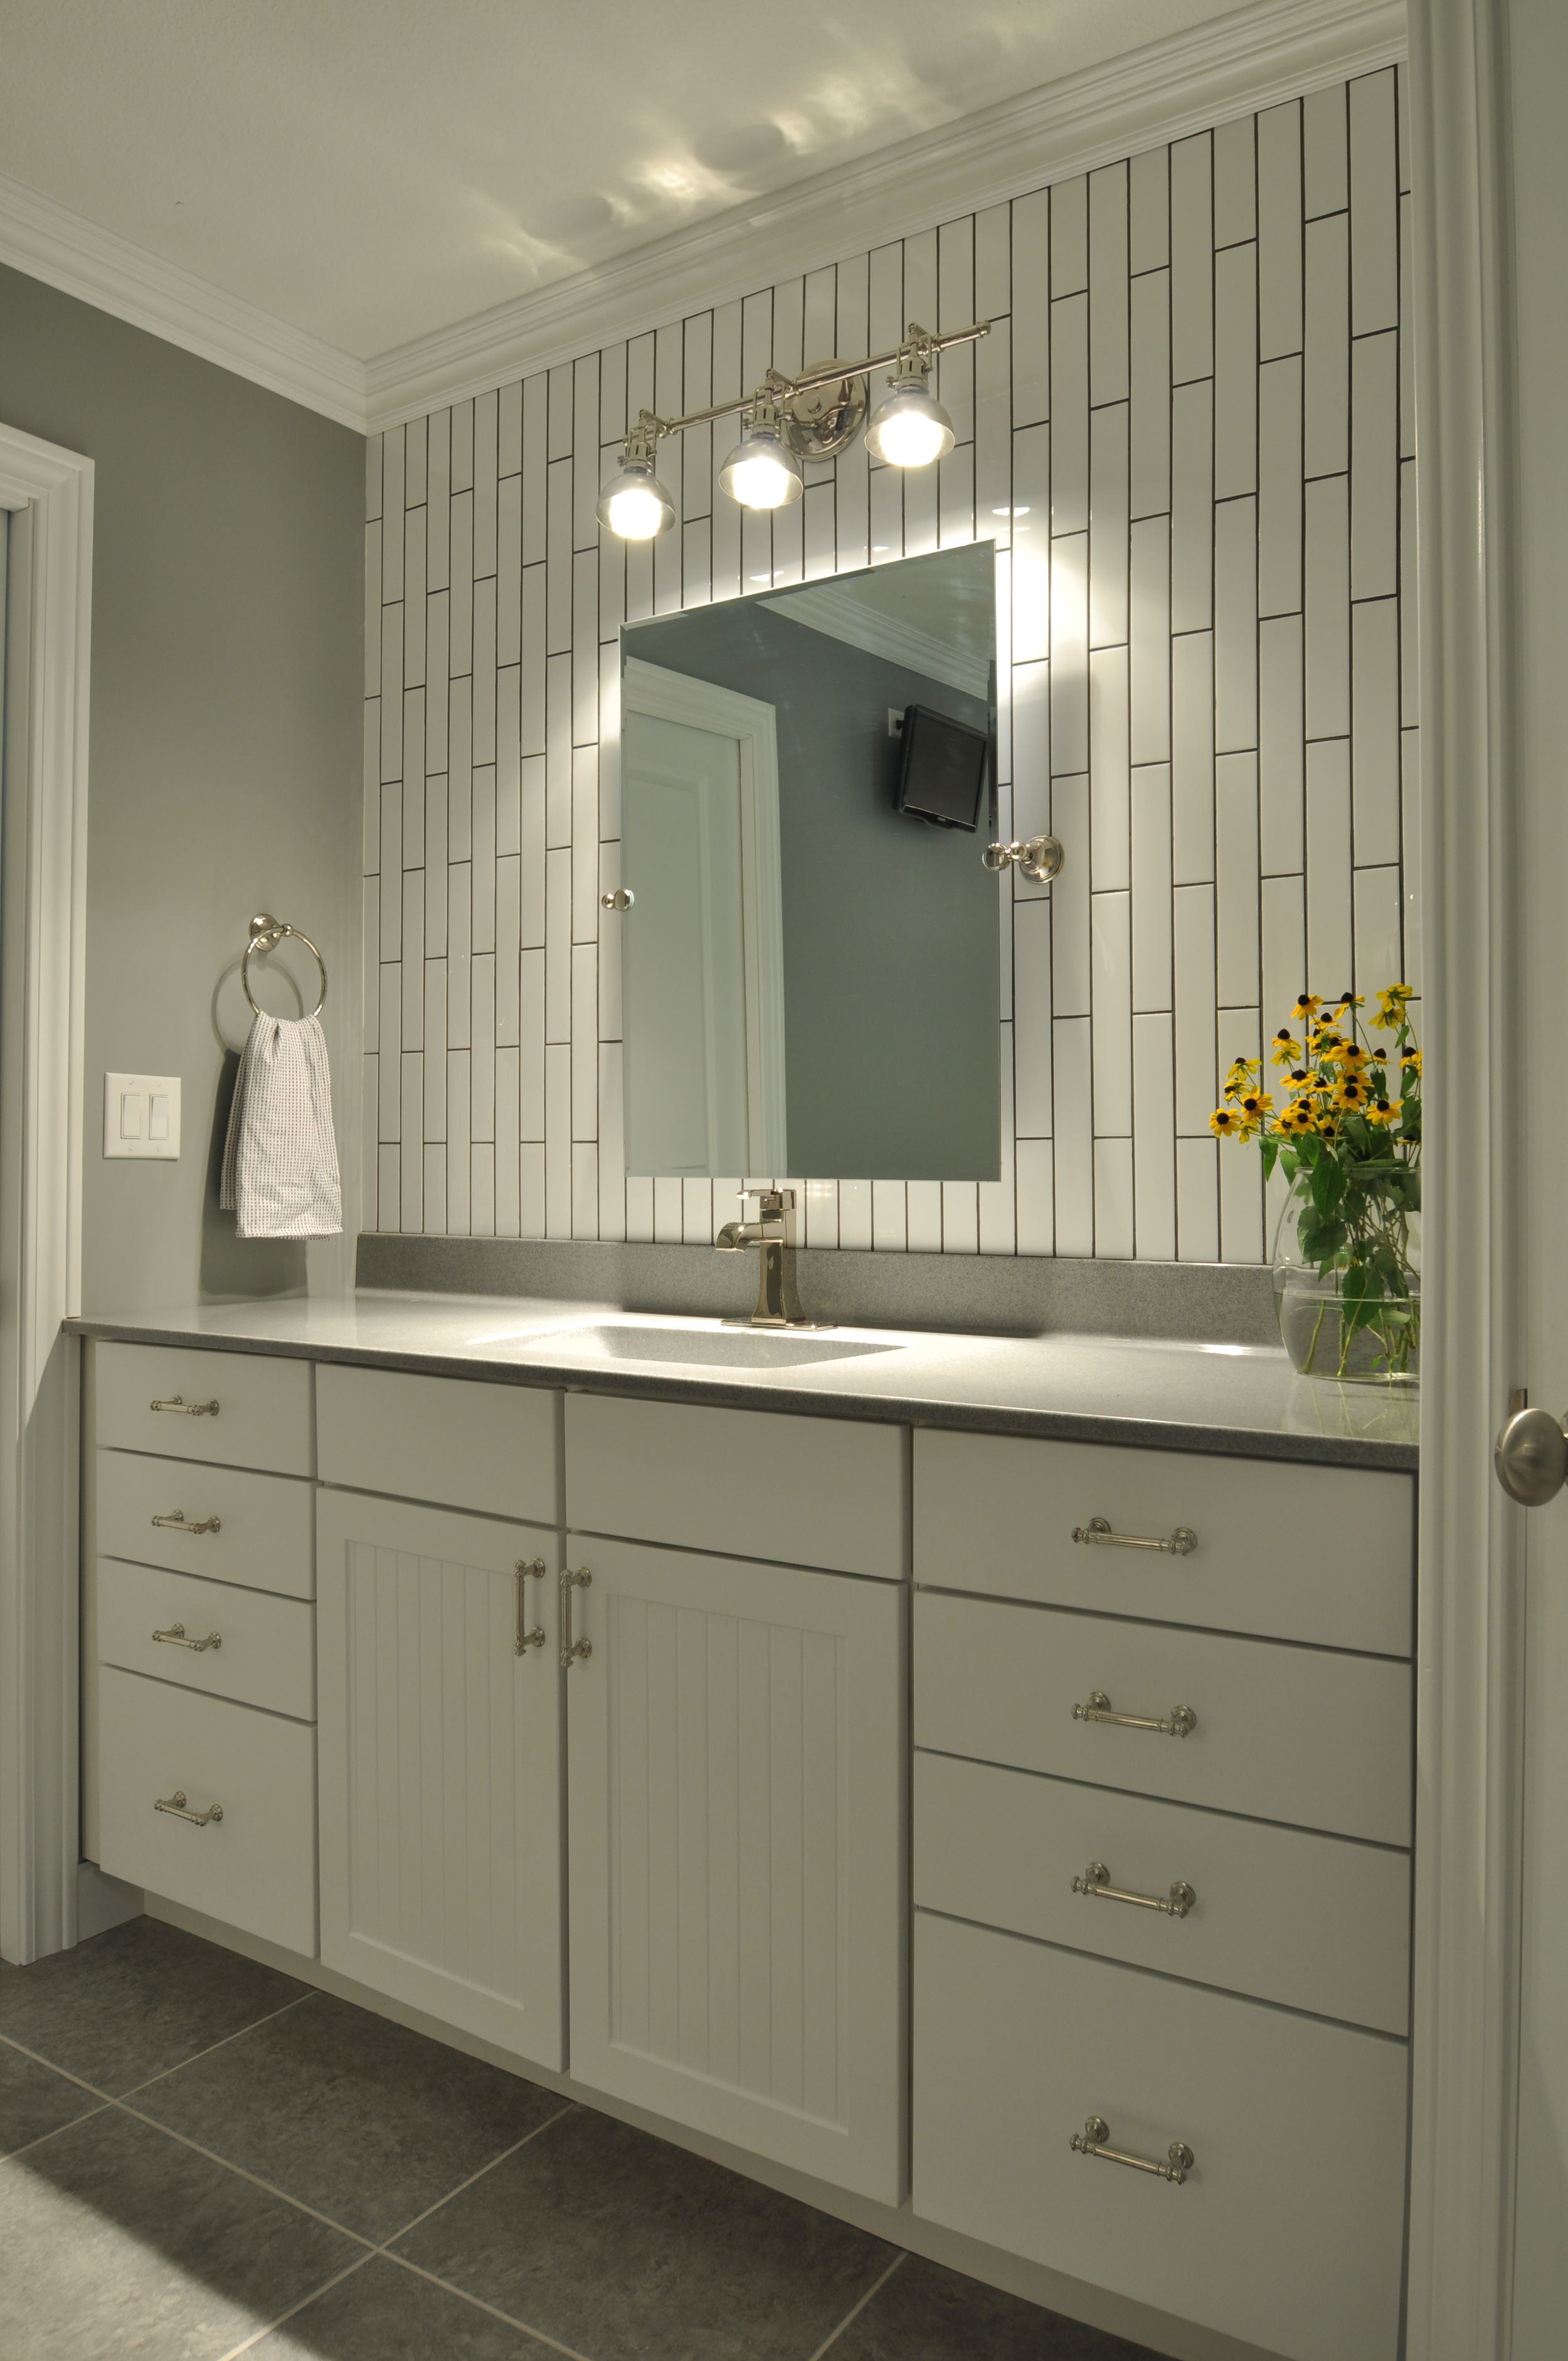 Pin by ceanna on bedroom pinterest white subway tiles grout master bathroom reveal the tile shop subway tile polished nickel finishes dailygadgetfo Gallery